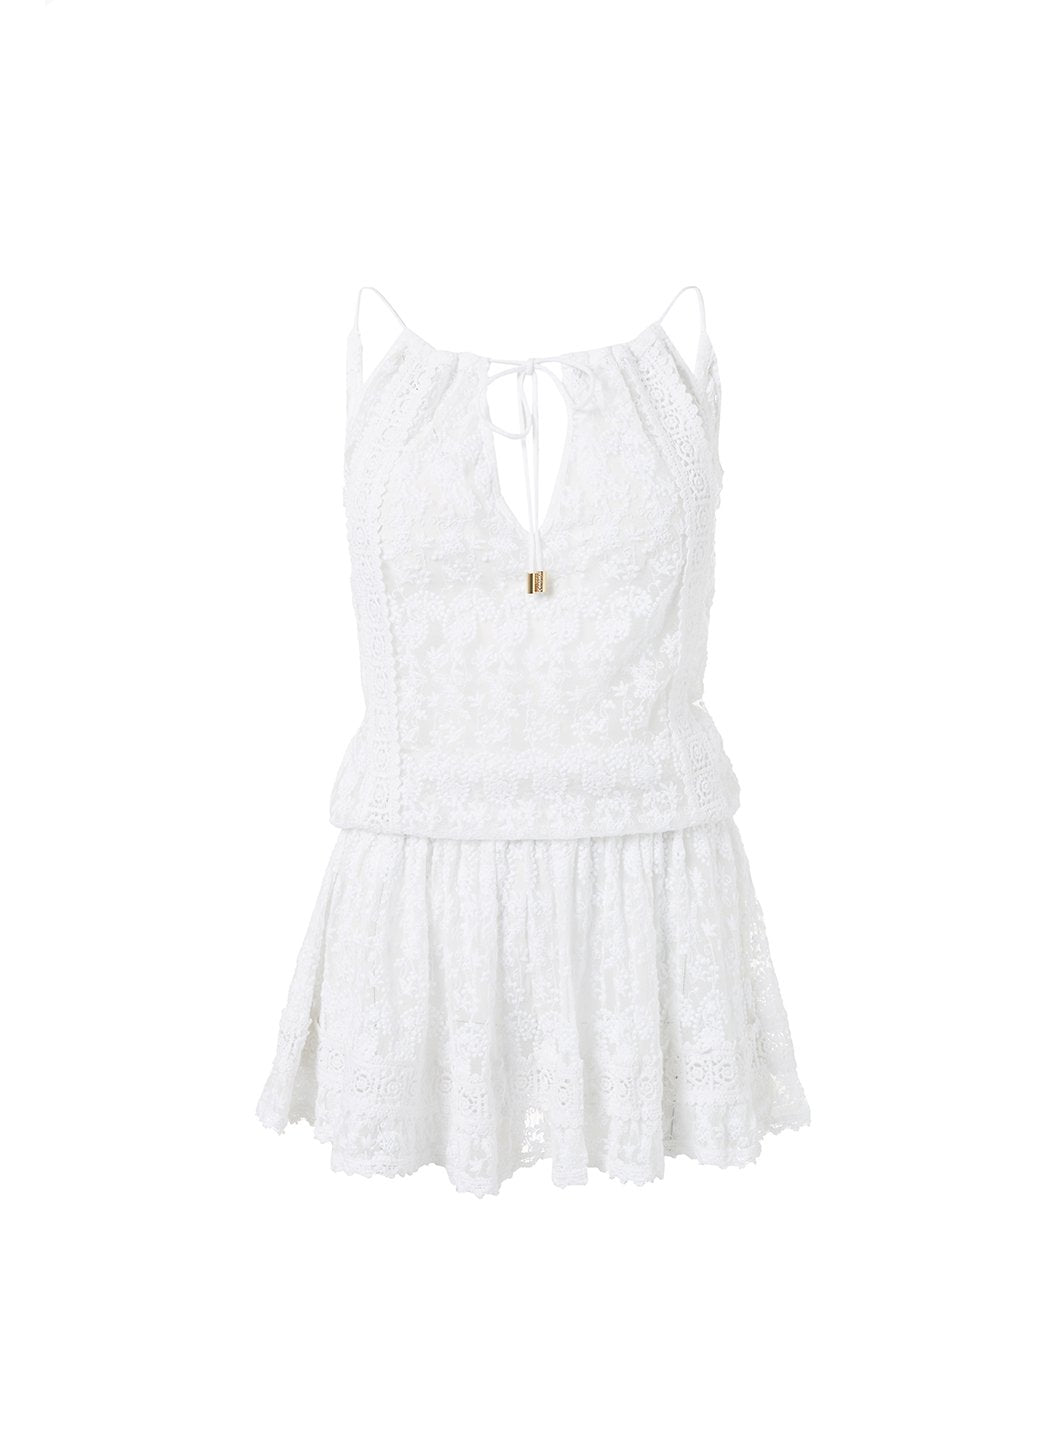 zoe white embroidered openback short beach dress 2019